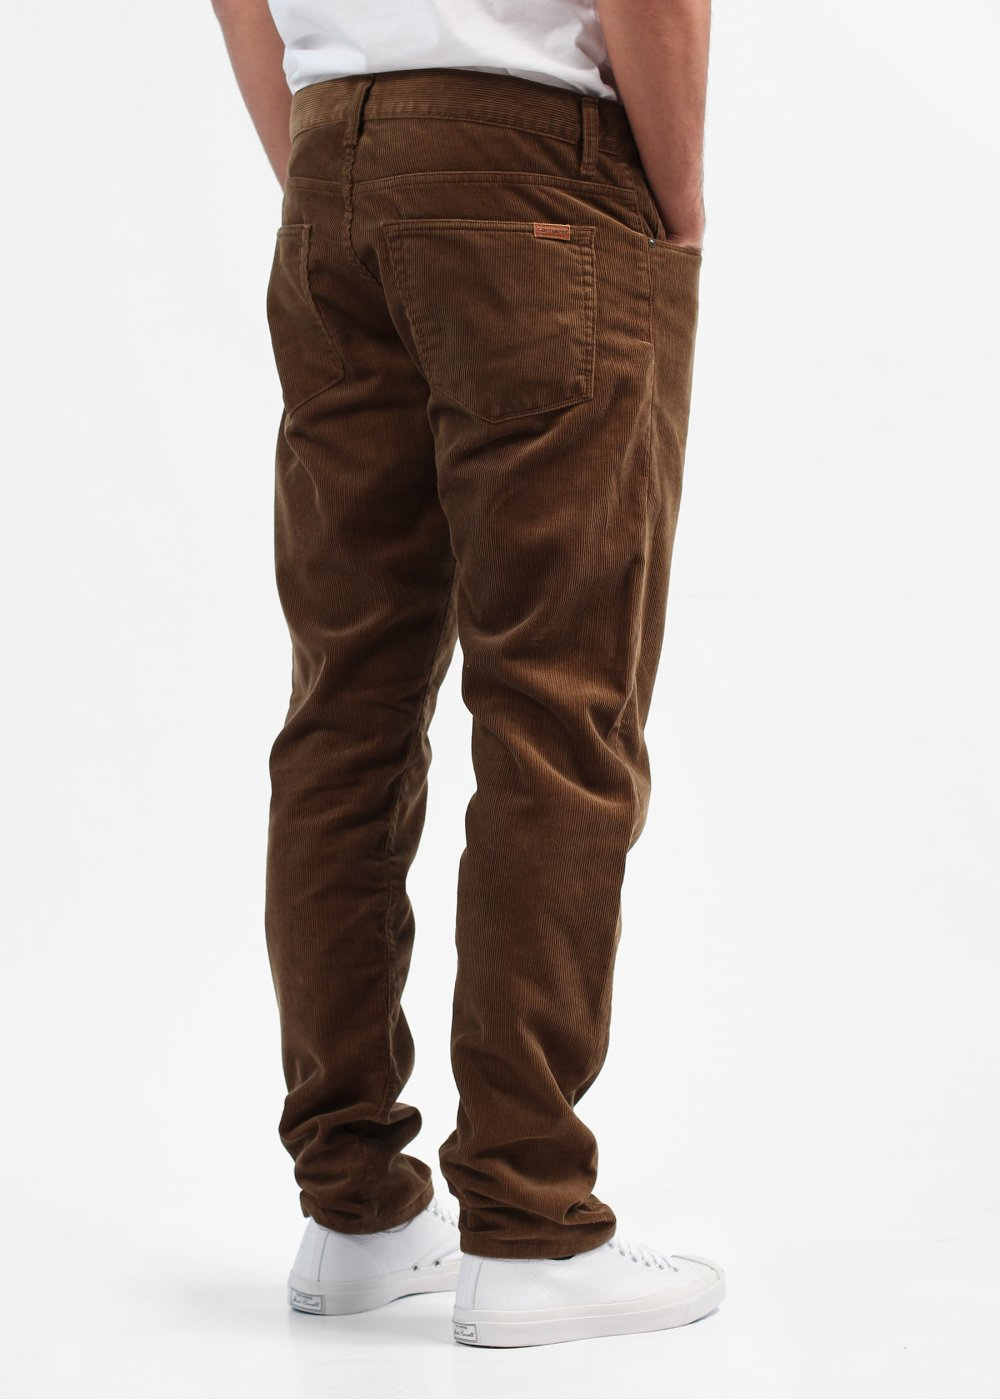 Carhartt Vicious Cord Pants Pecan Brown